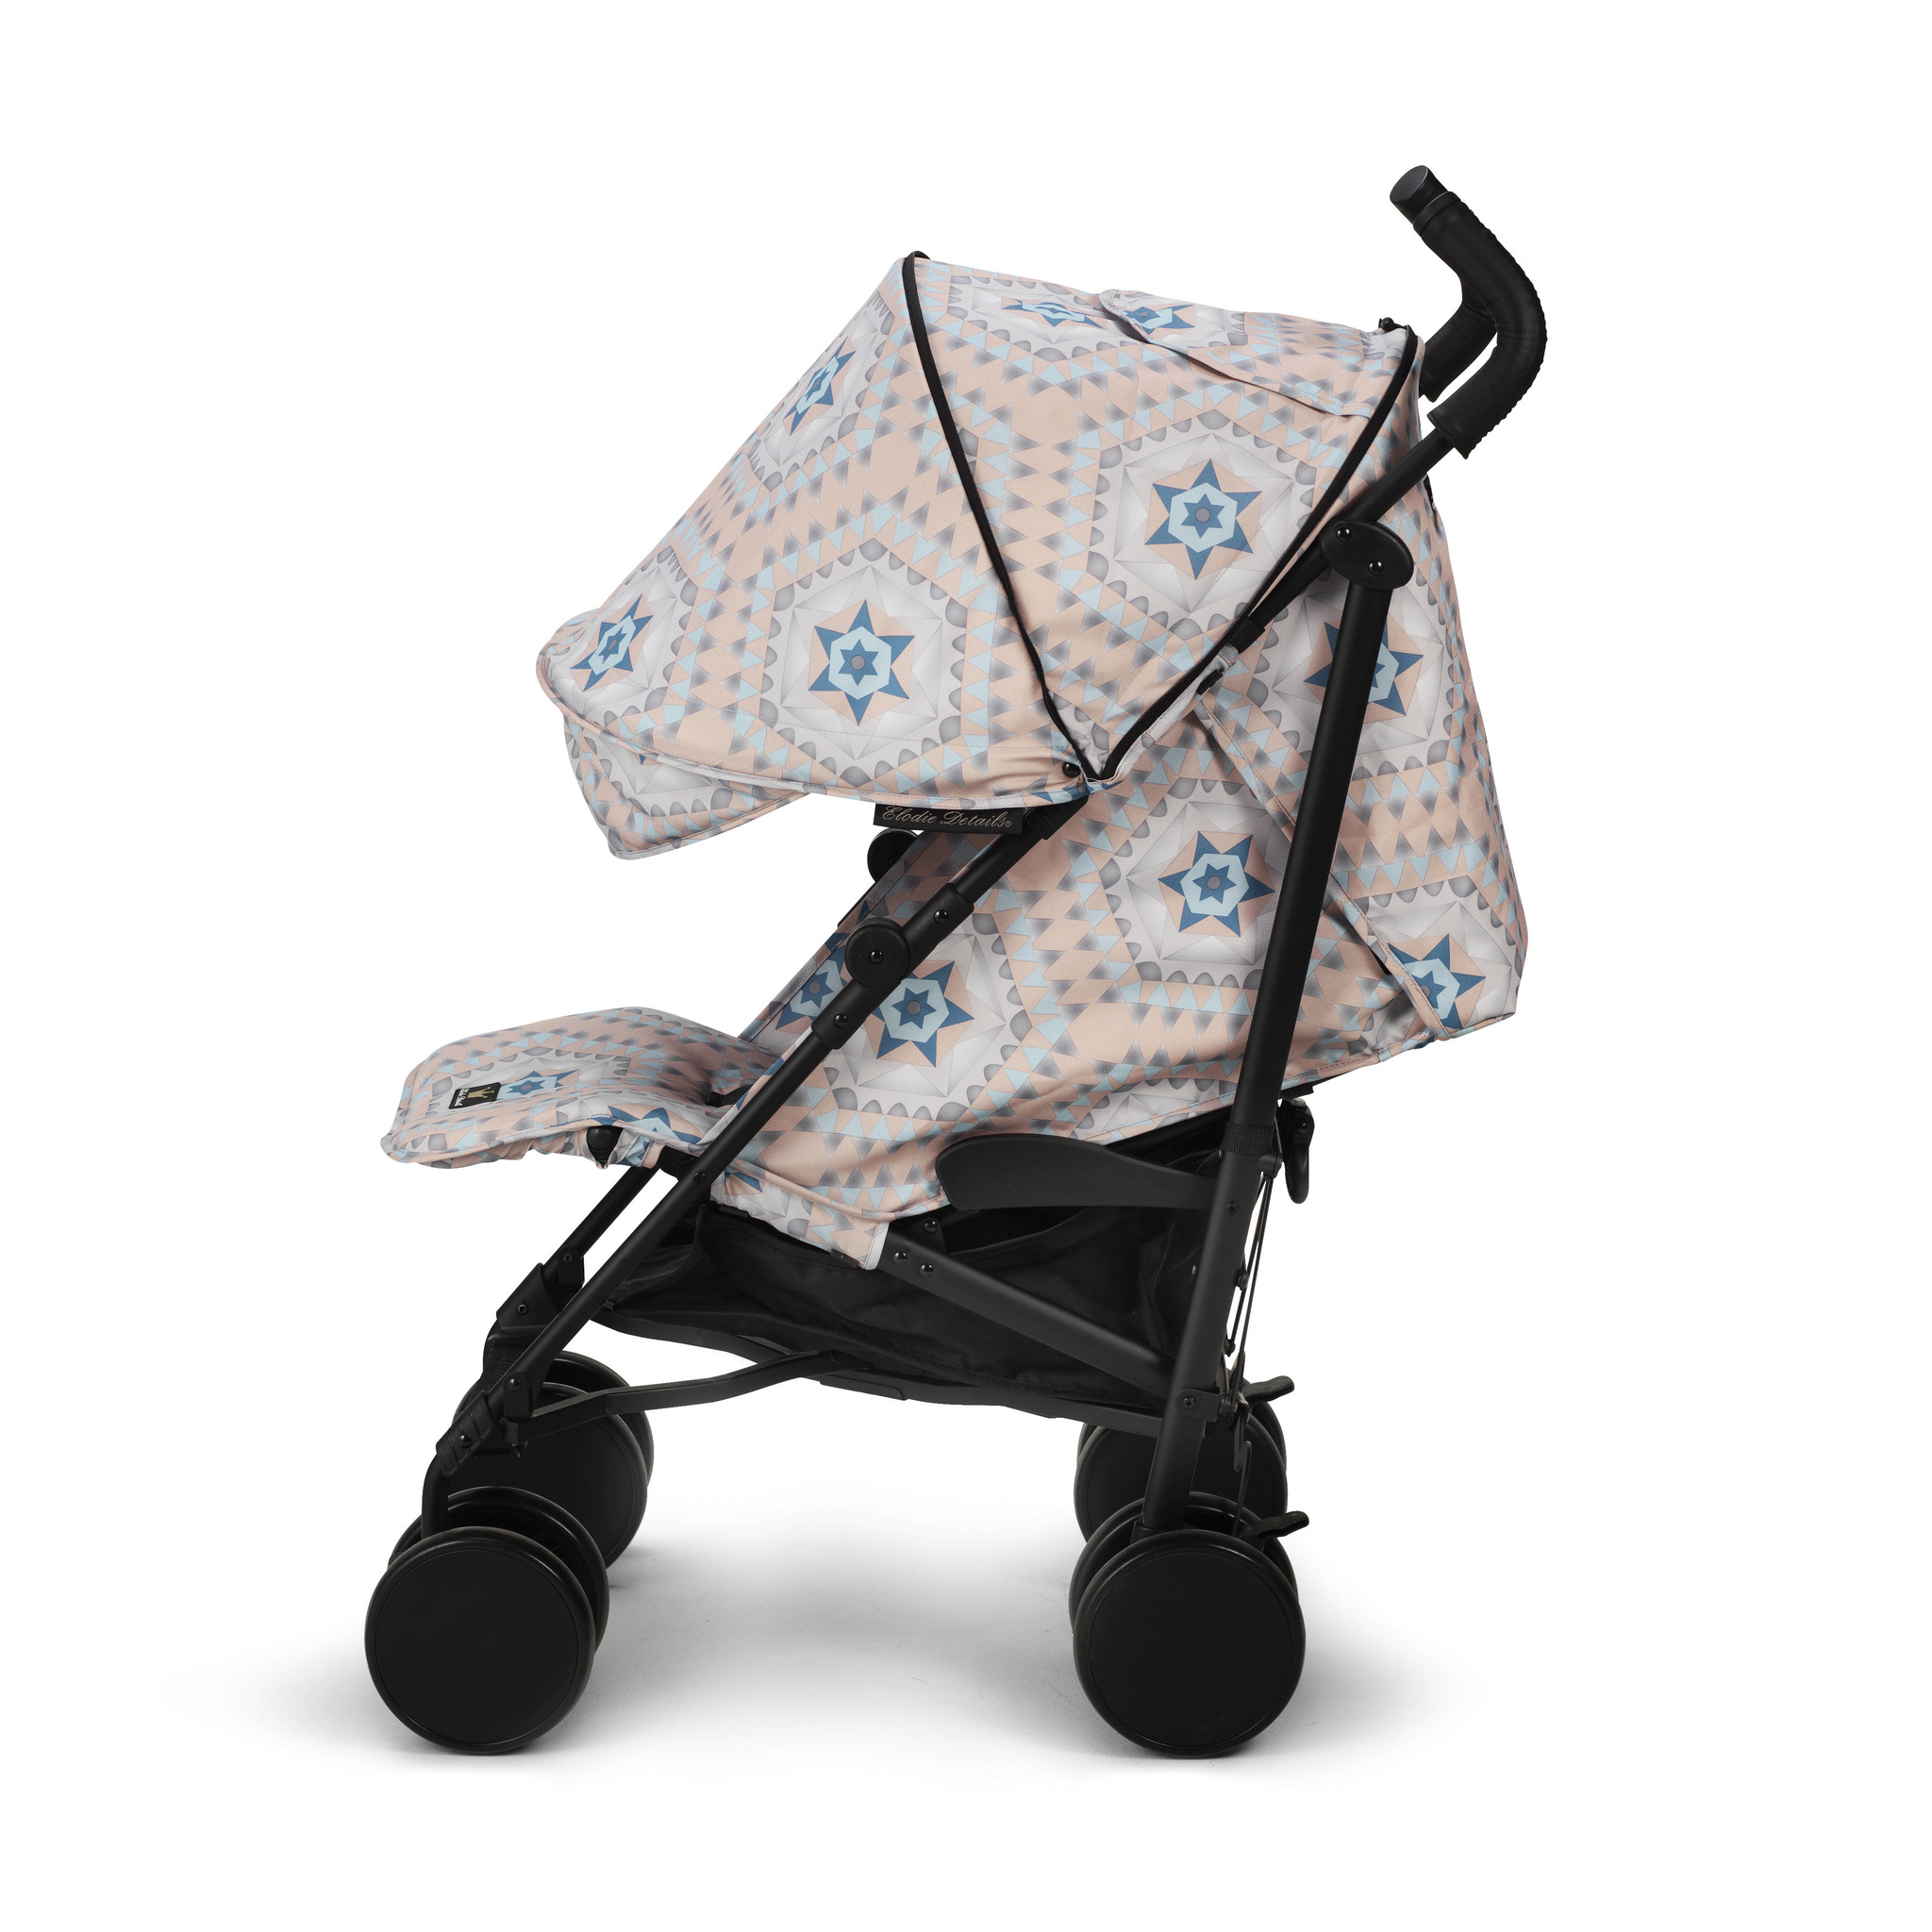 Wubbanub Infant Pacifiers likewise Bugaboo High Performance Footmuff also The One And Only The Mommy Hook Green moreover 565131453214304671 likewise Product Pol 2229 Elodie Details Wozek Stockholm Stroller Bedouin Stories. on jj cole stroller